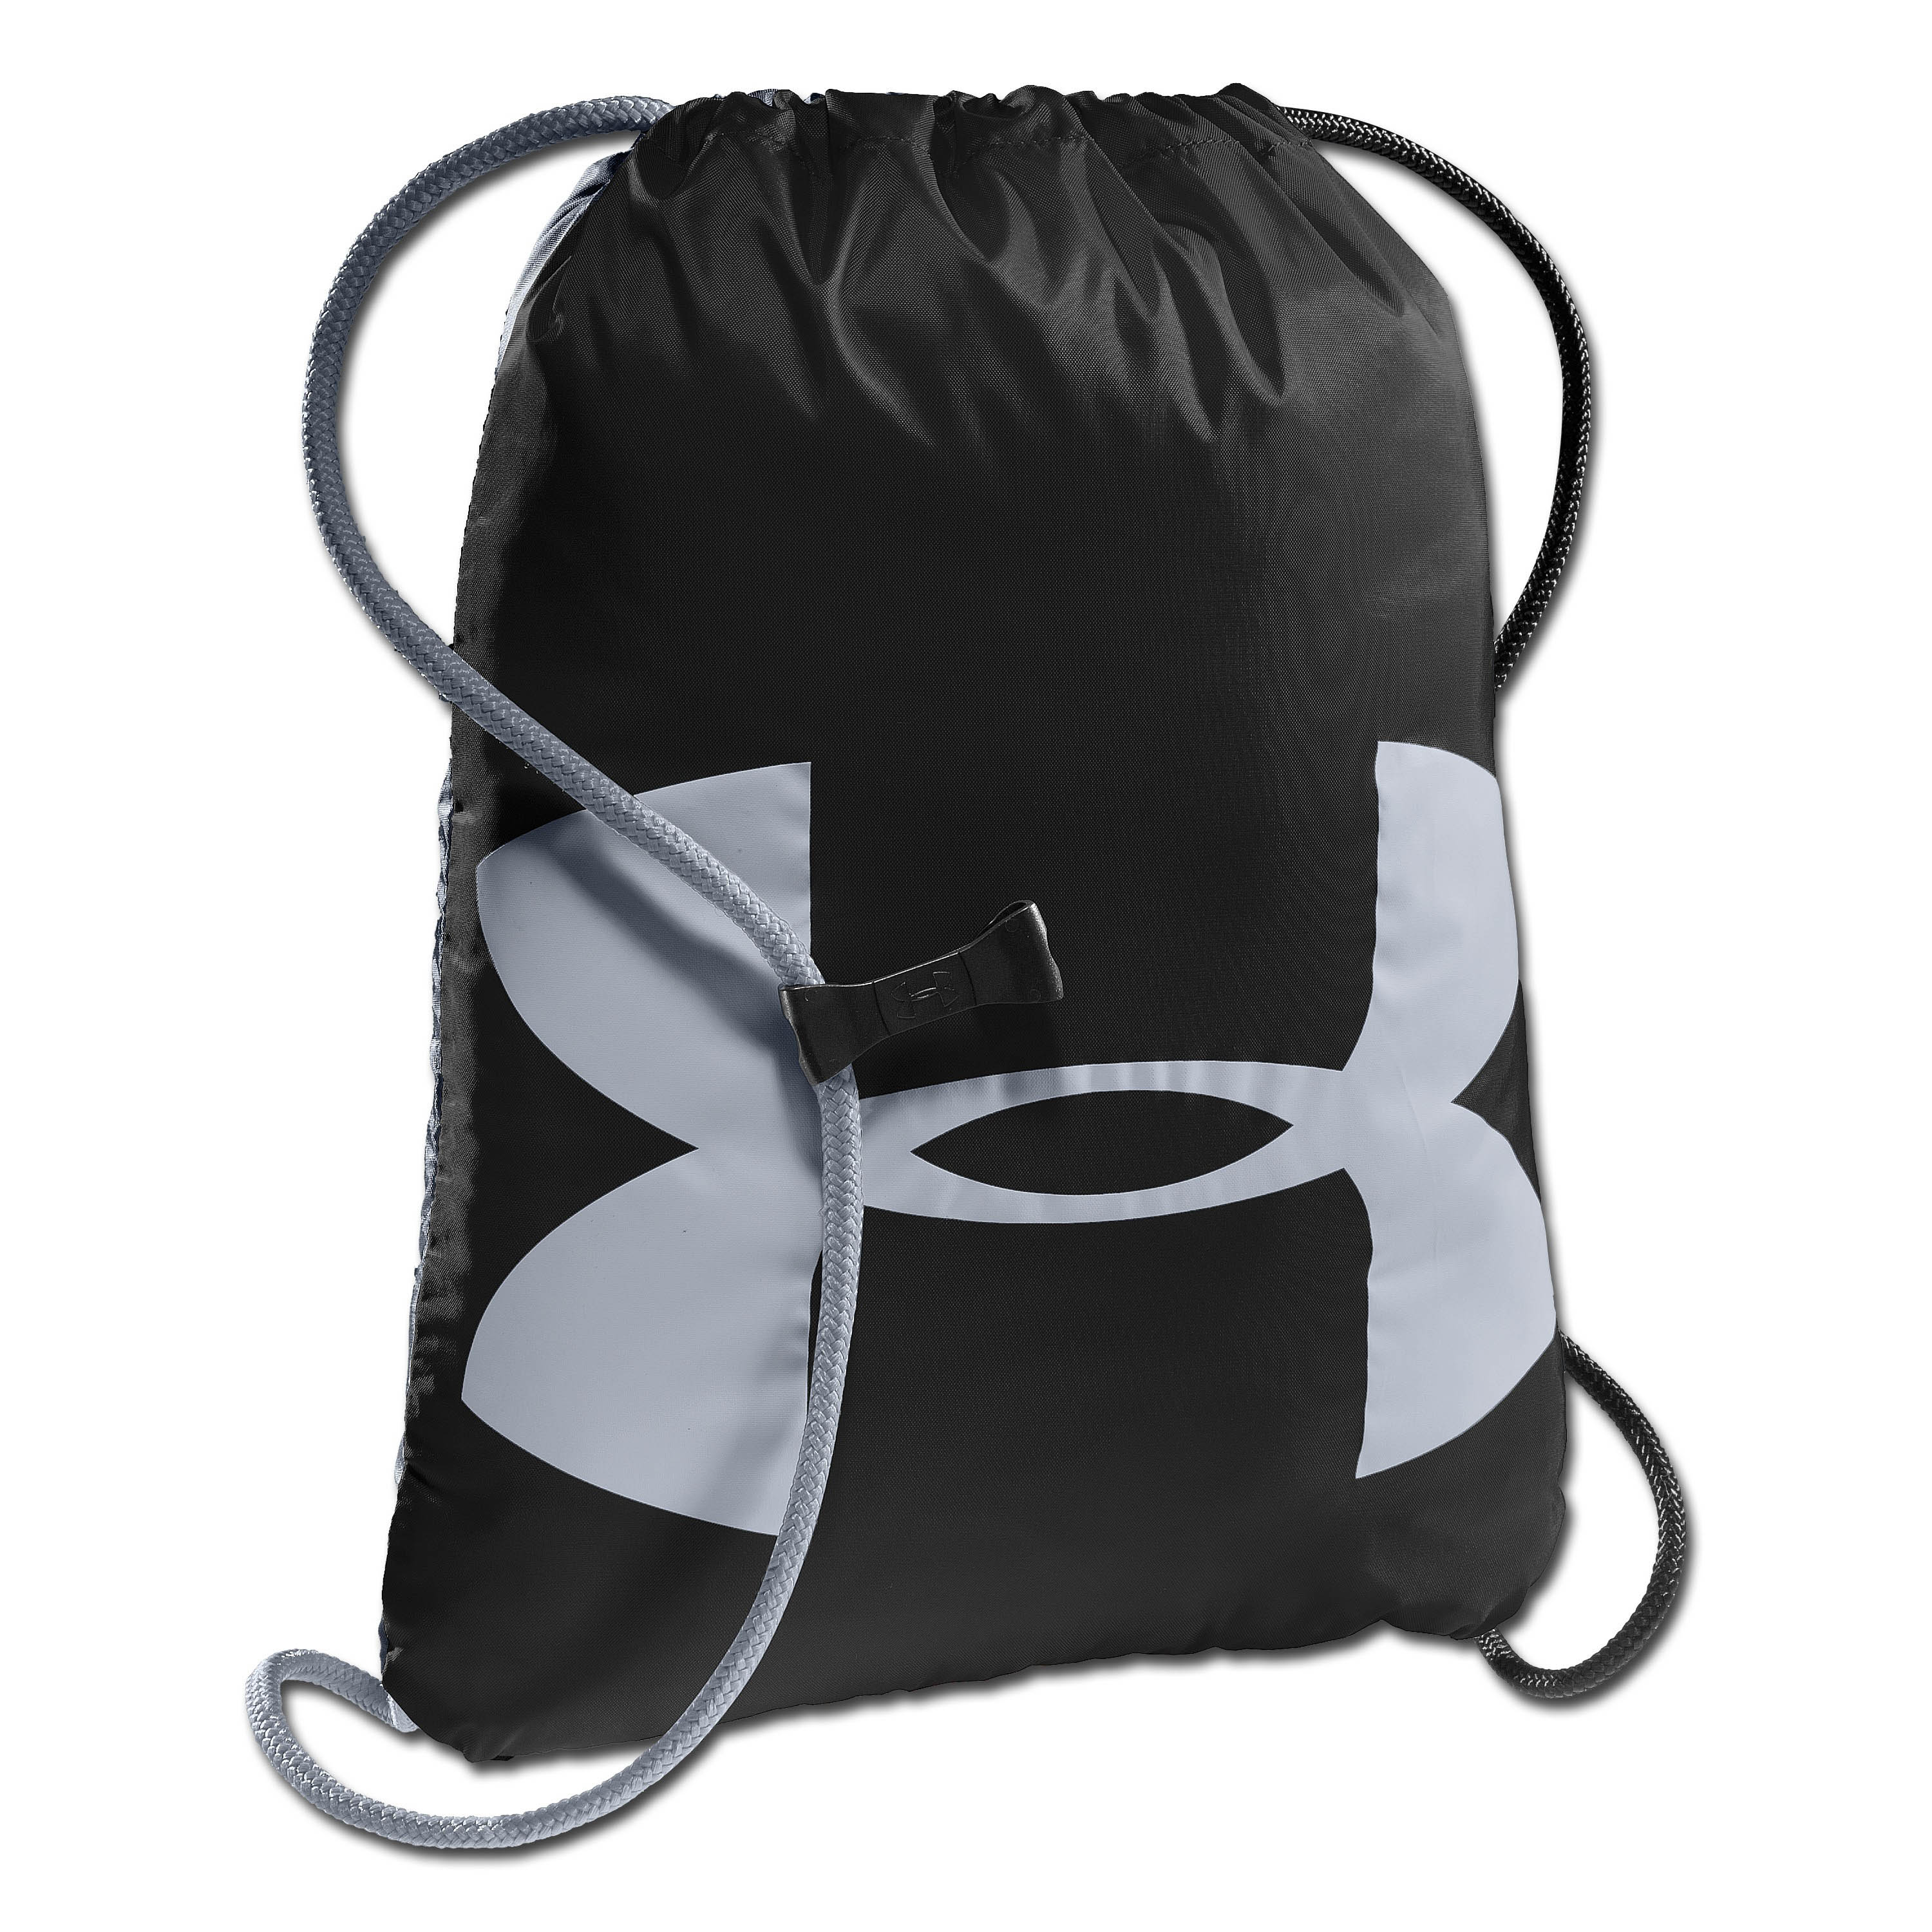 Bolsa Under Armour Ozsee negra